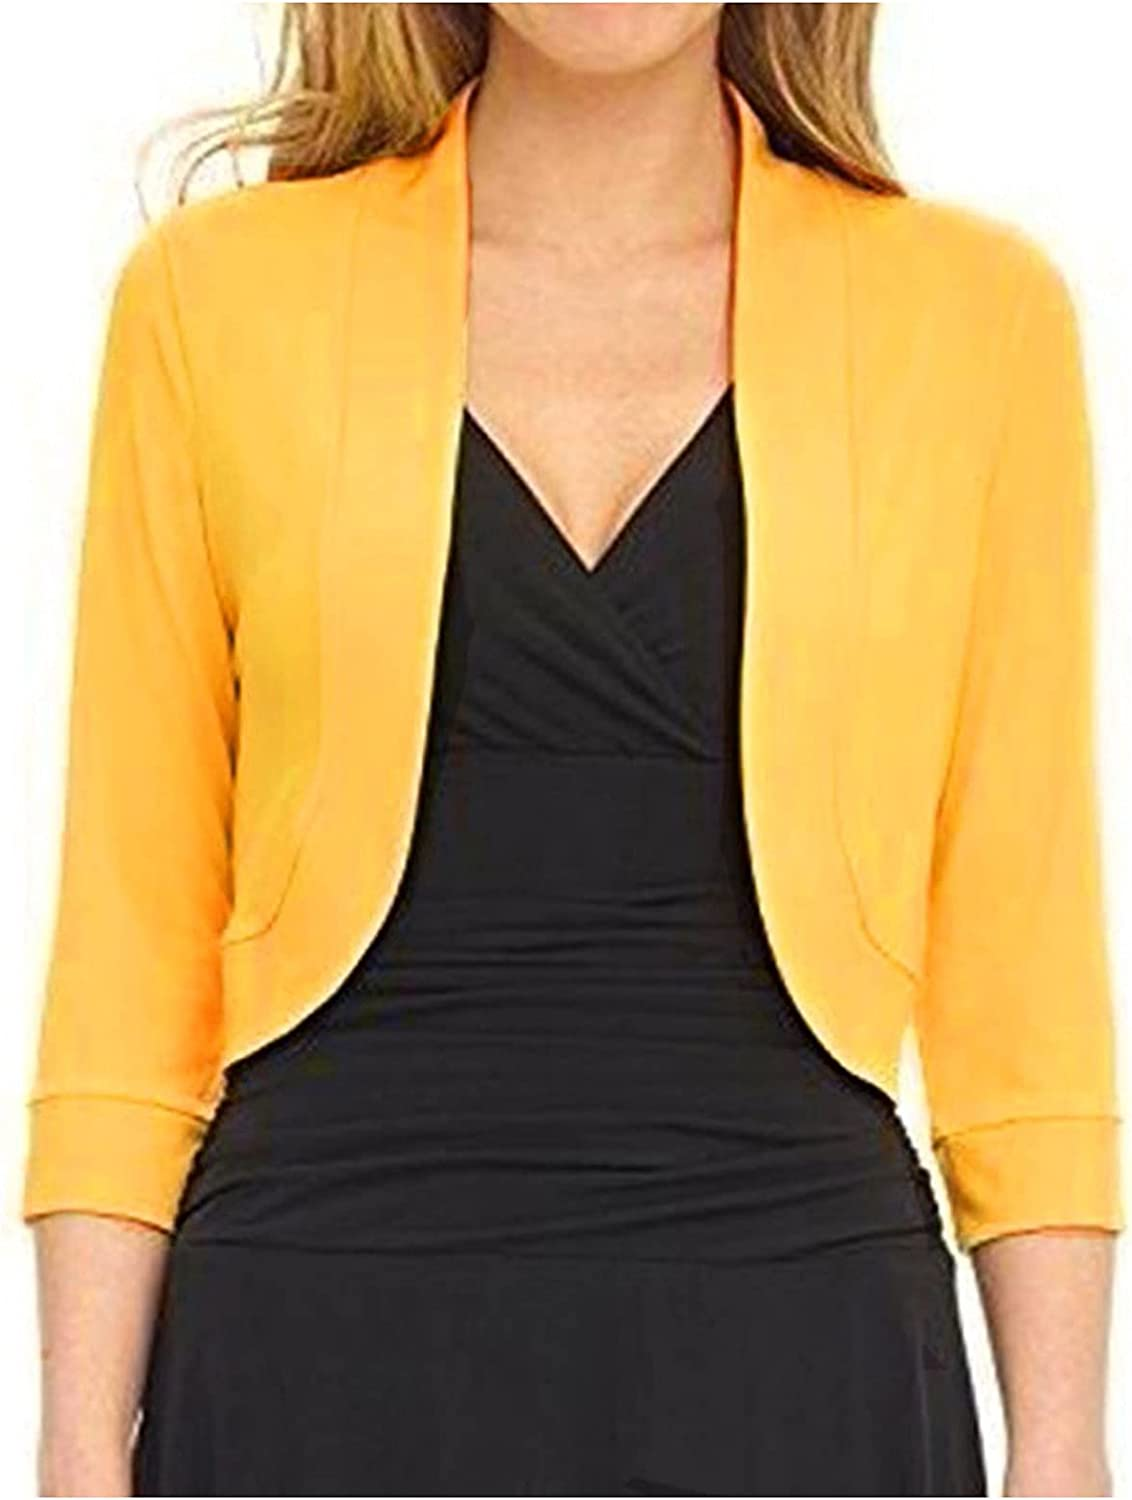 VonVonCo Fashion Business Casual Tops for Women Short Half Sleeve Pure Mini Office Work Cardigan Casual Plus Coat